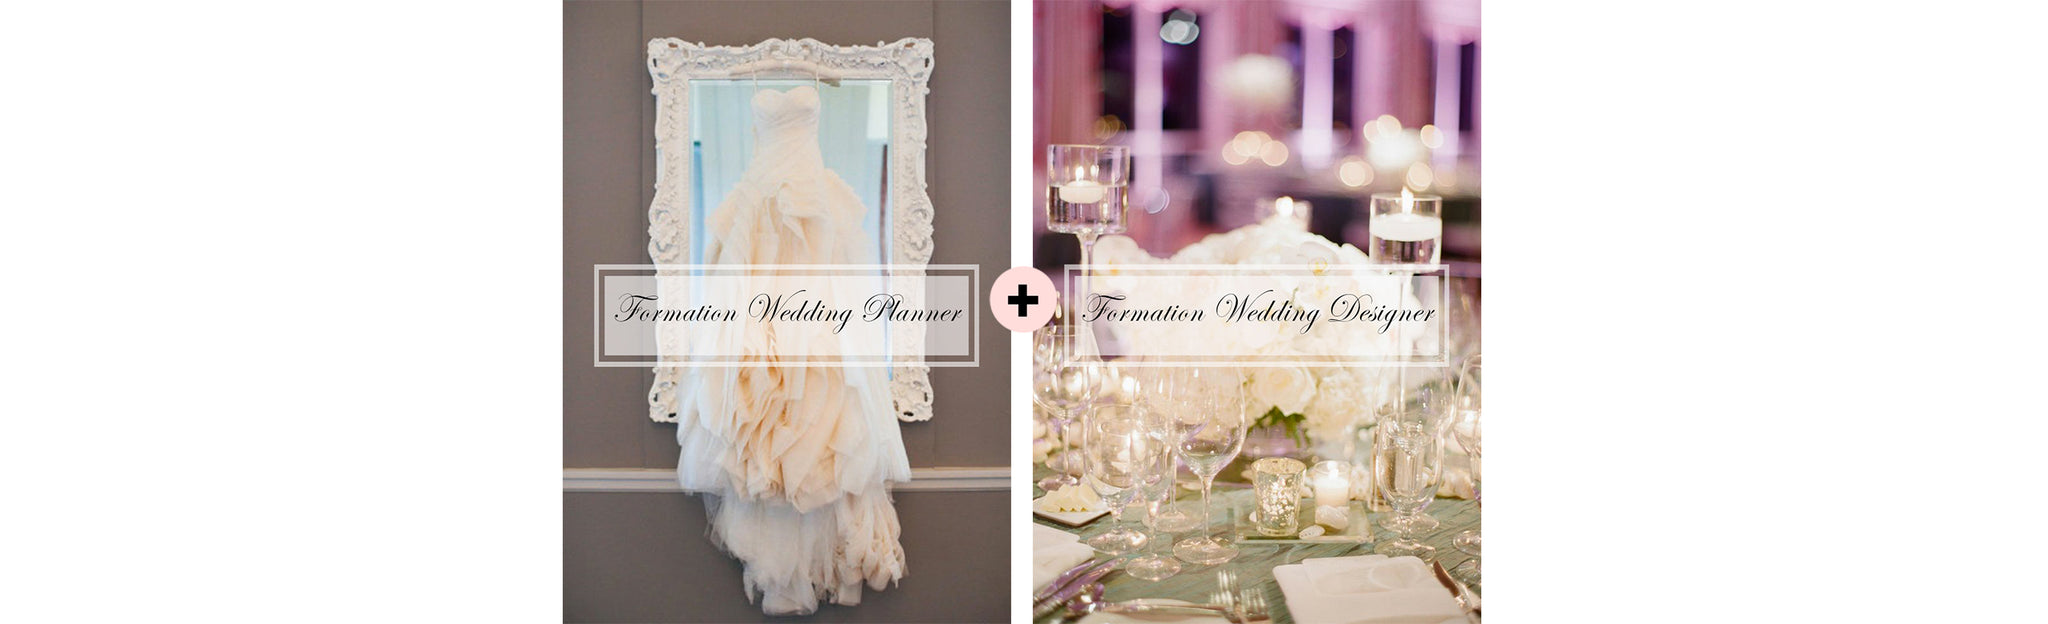 Wedding Designer Expert